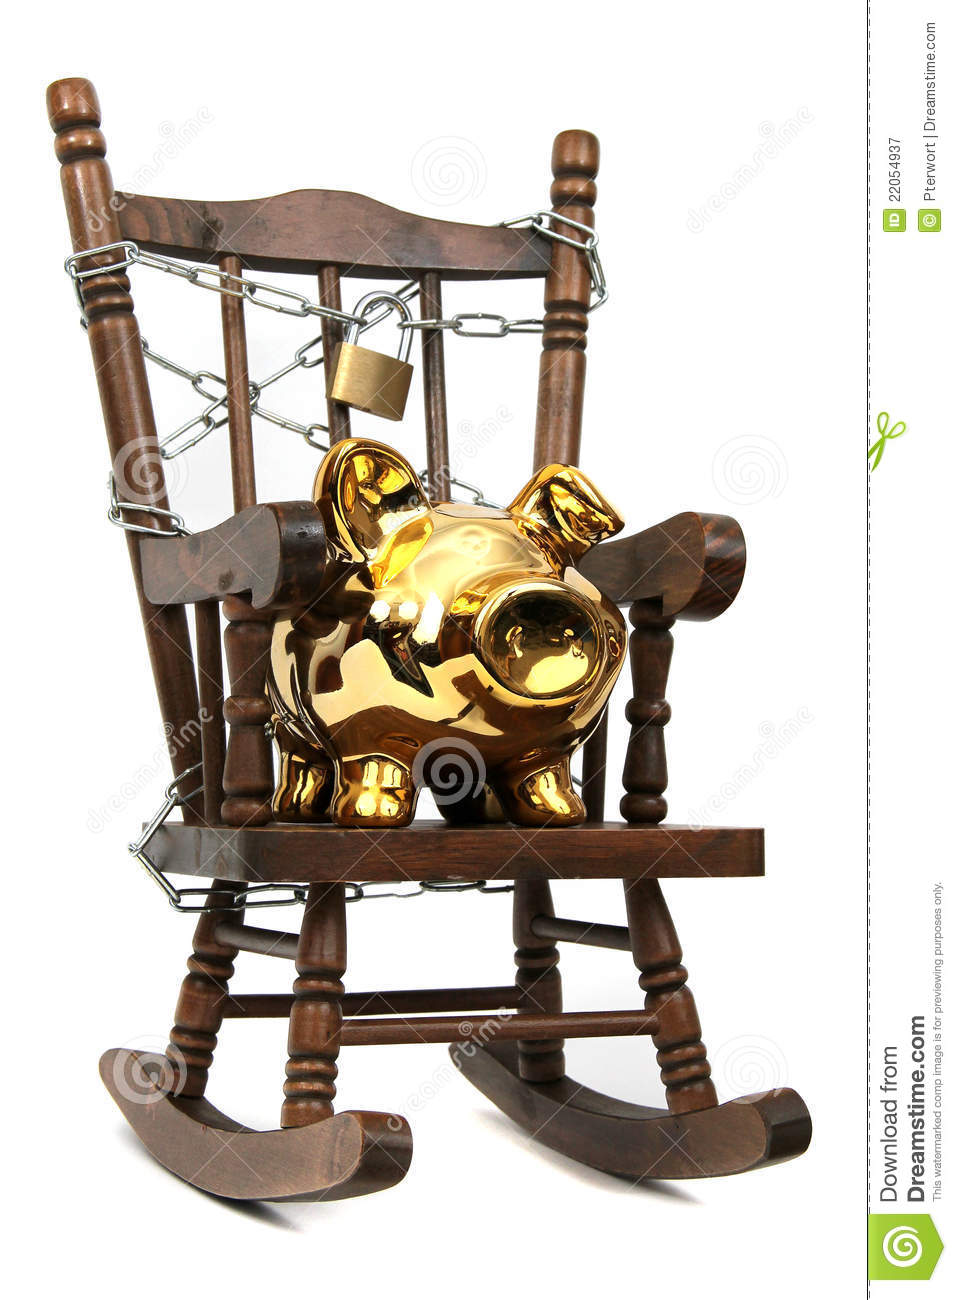 Rocking chair and piggy bank captured with chain a